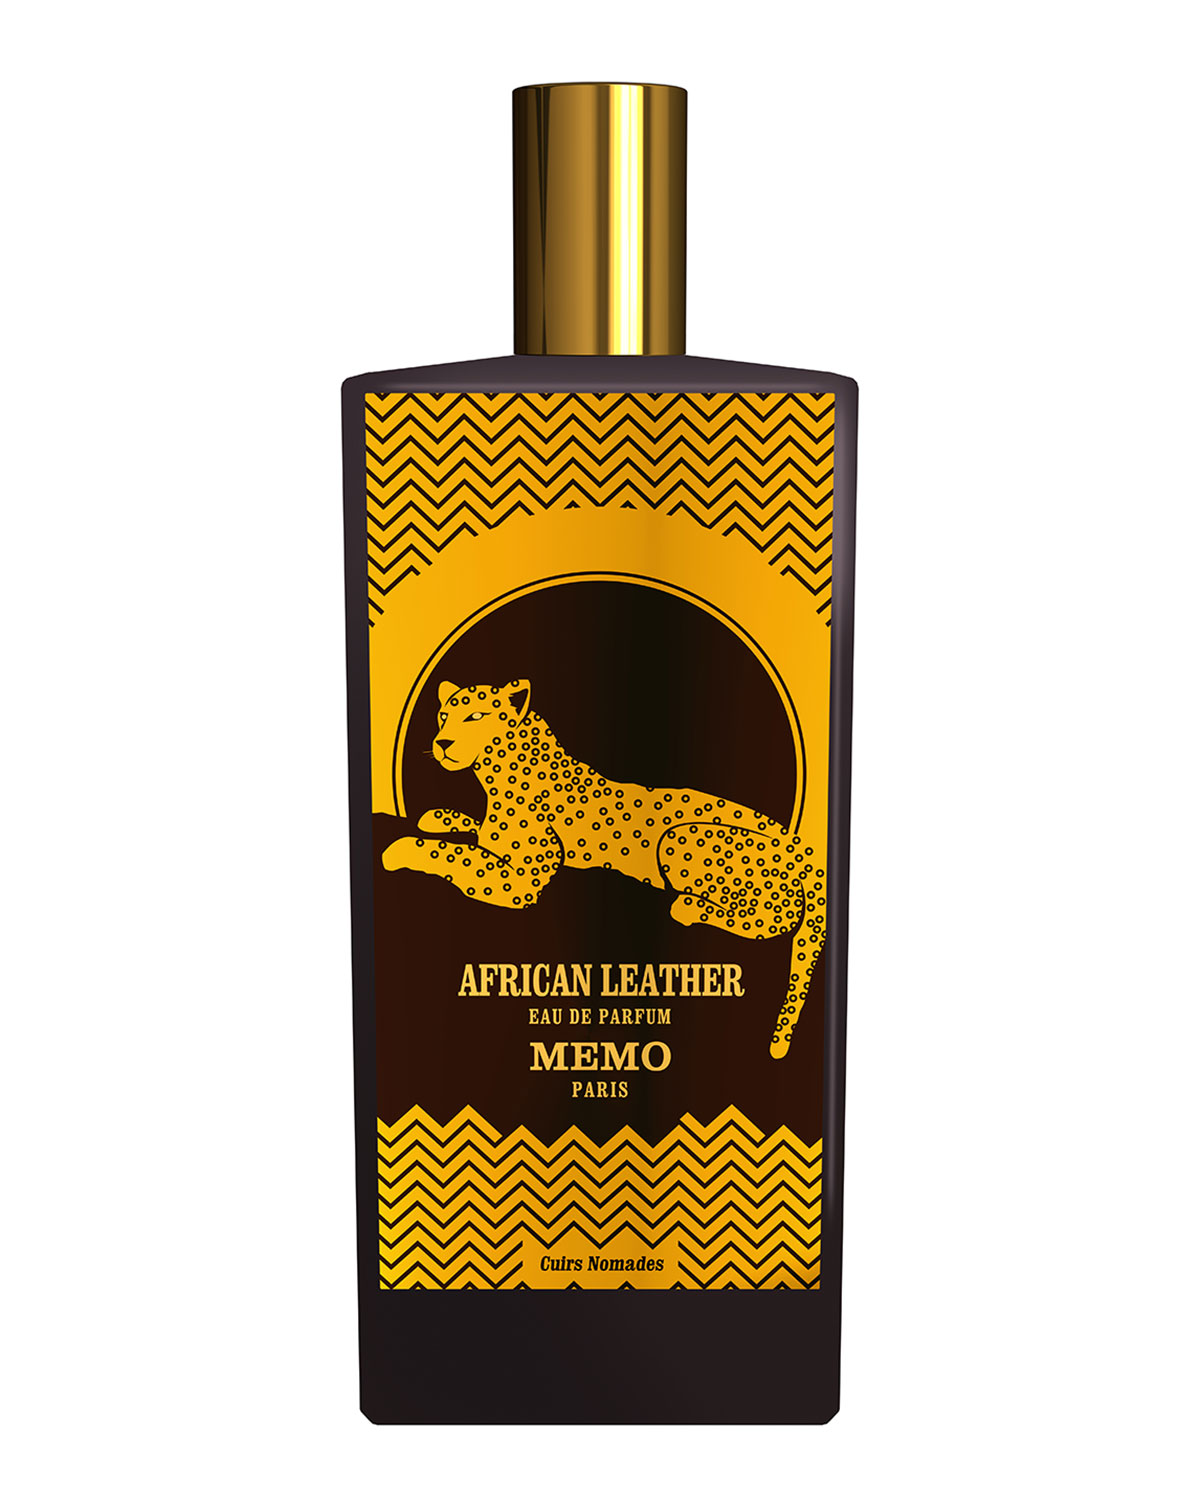 Memo Paris 2.5 oz. African Leather Eau de parfum